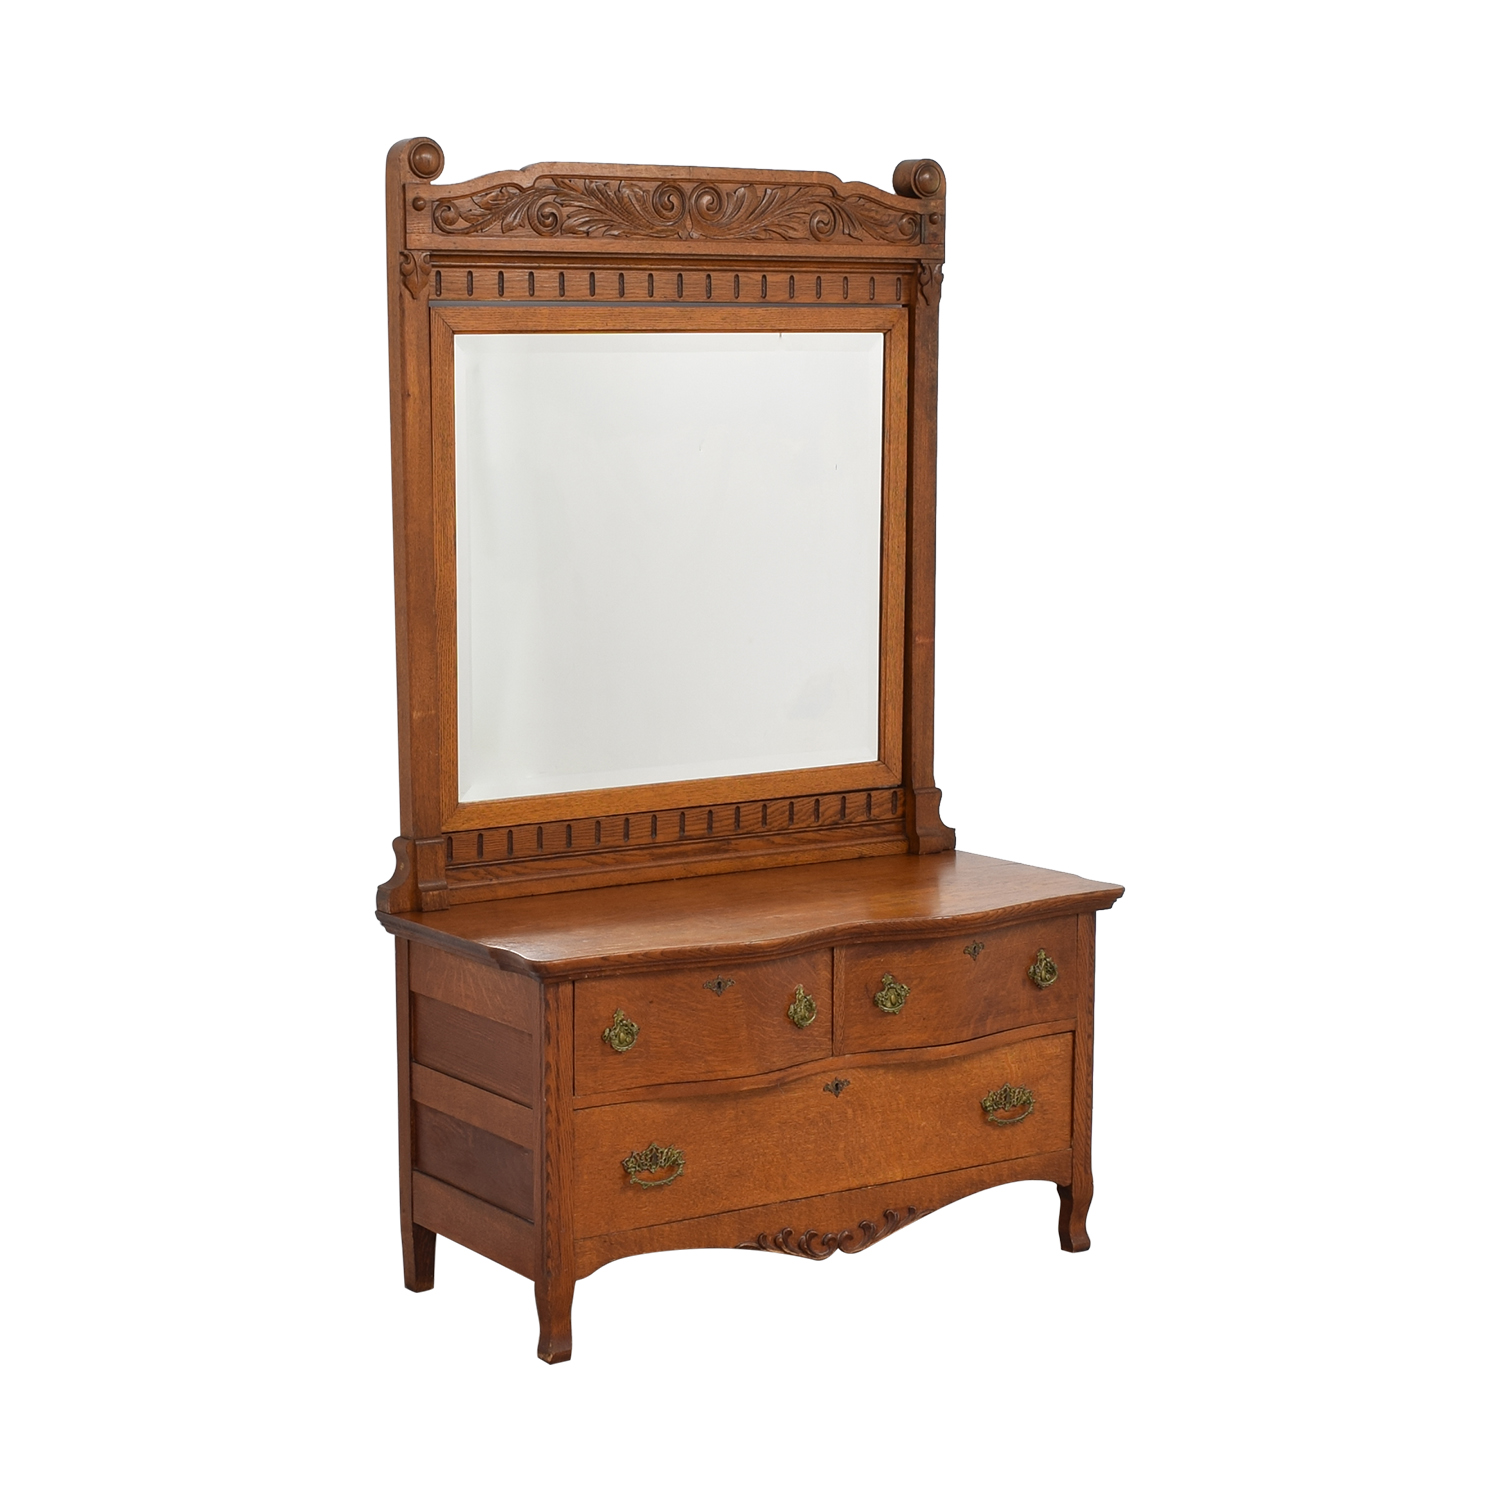 buy Woodward Furniture Works Dresser with Mirror Woodward Furniture Works